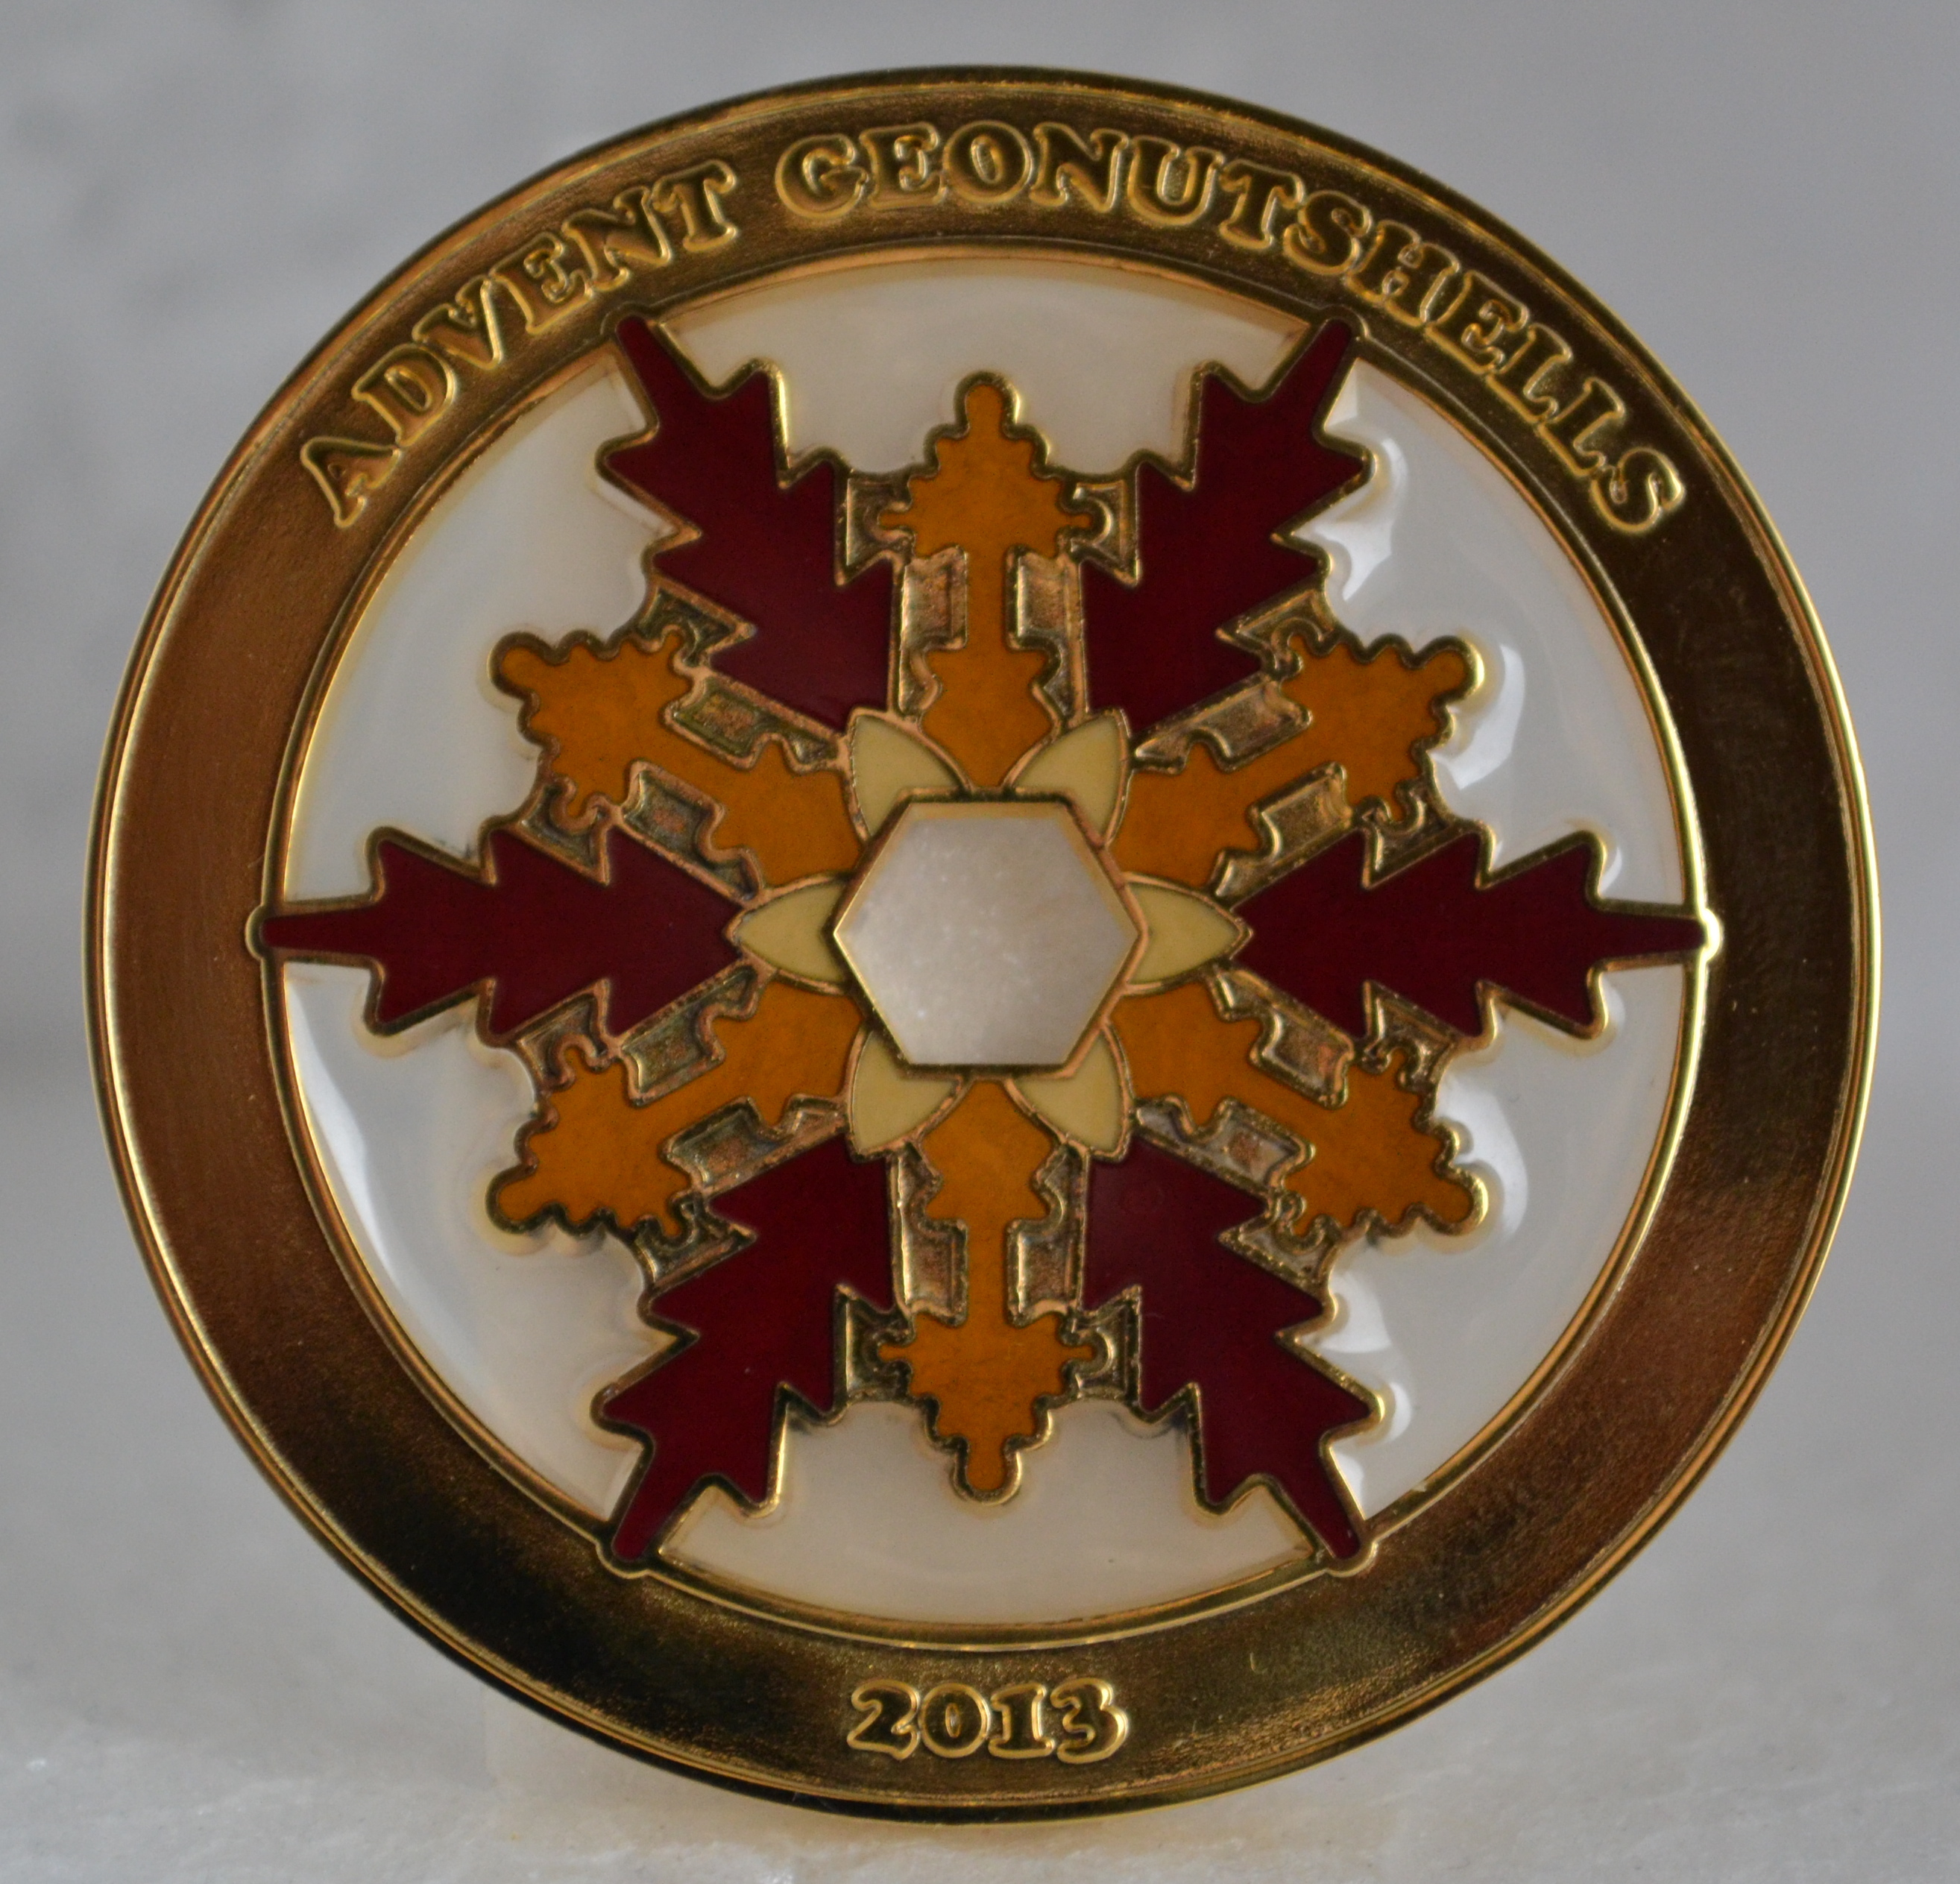 Advent Geonutshells 2013 Geocoin - gold